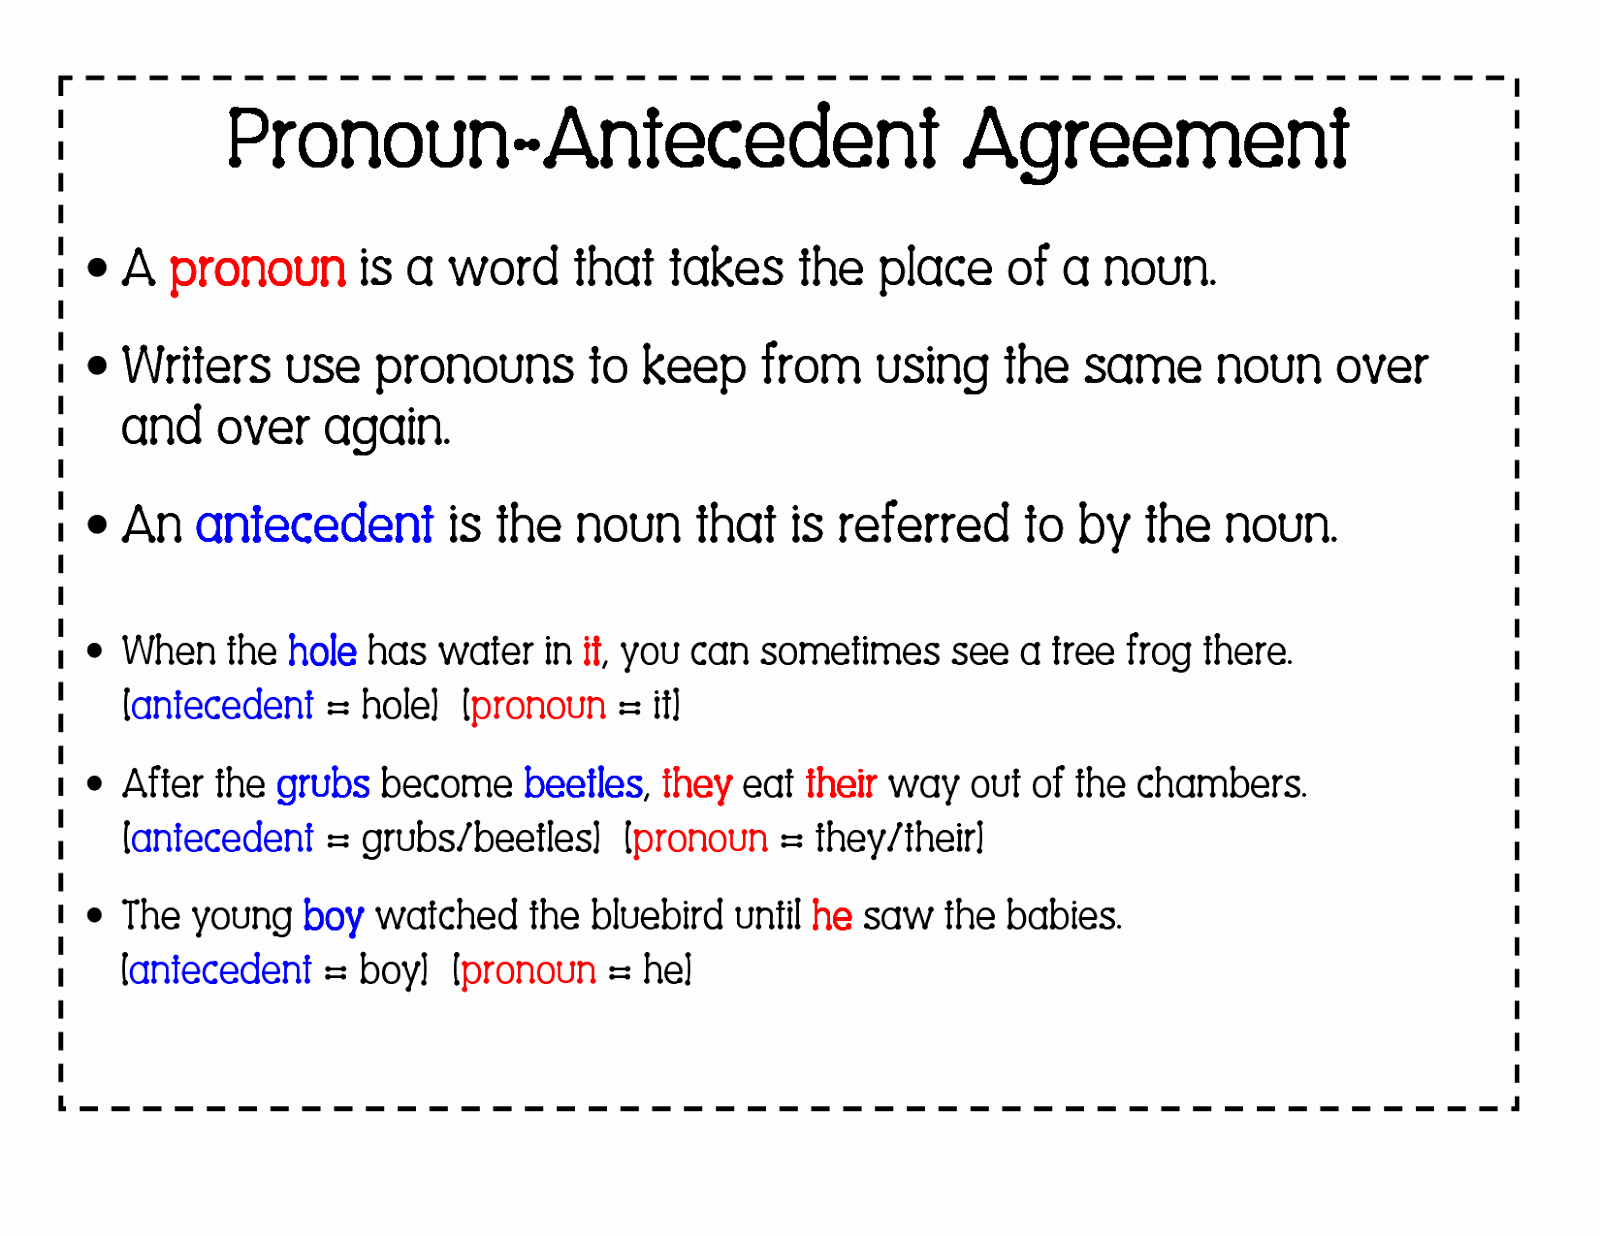 Pronouns and Antecedents Worksheet Unique 6th Grade English with Mr T Pronoun Antecedent Agreement